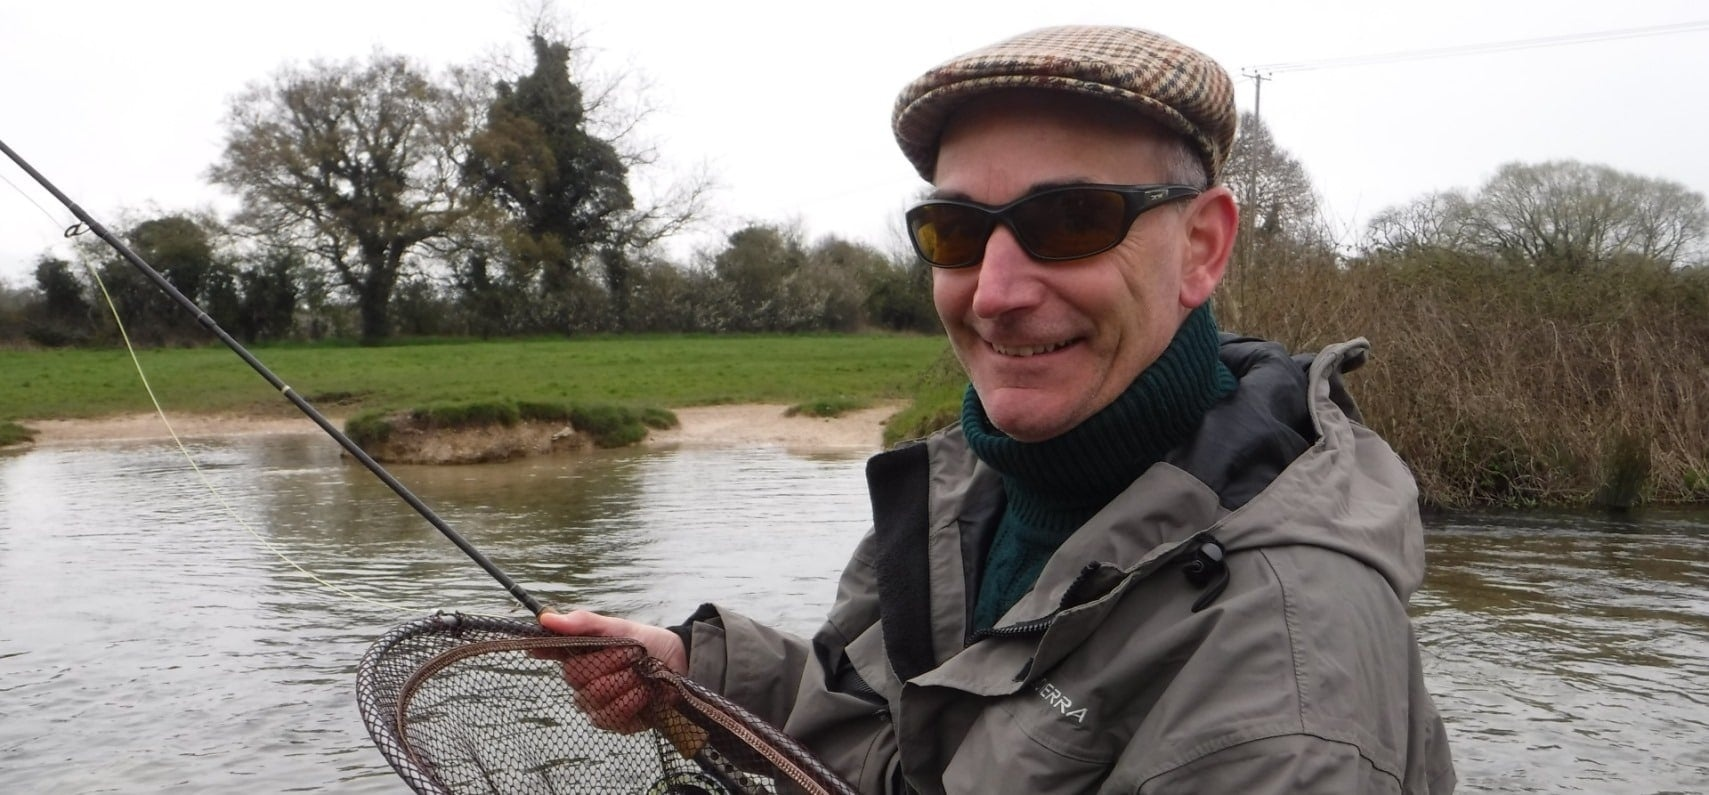 Full Day River Fishing Lesson - Cotswolds-9